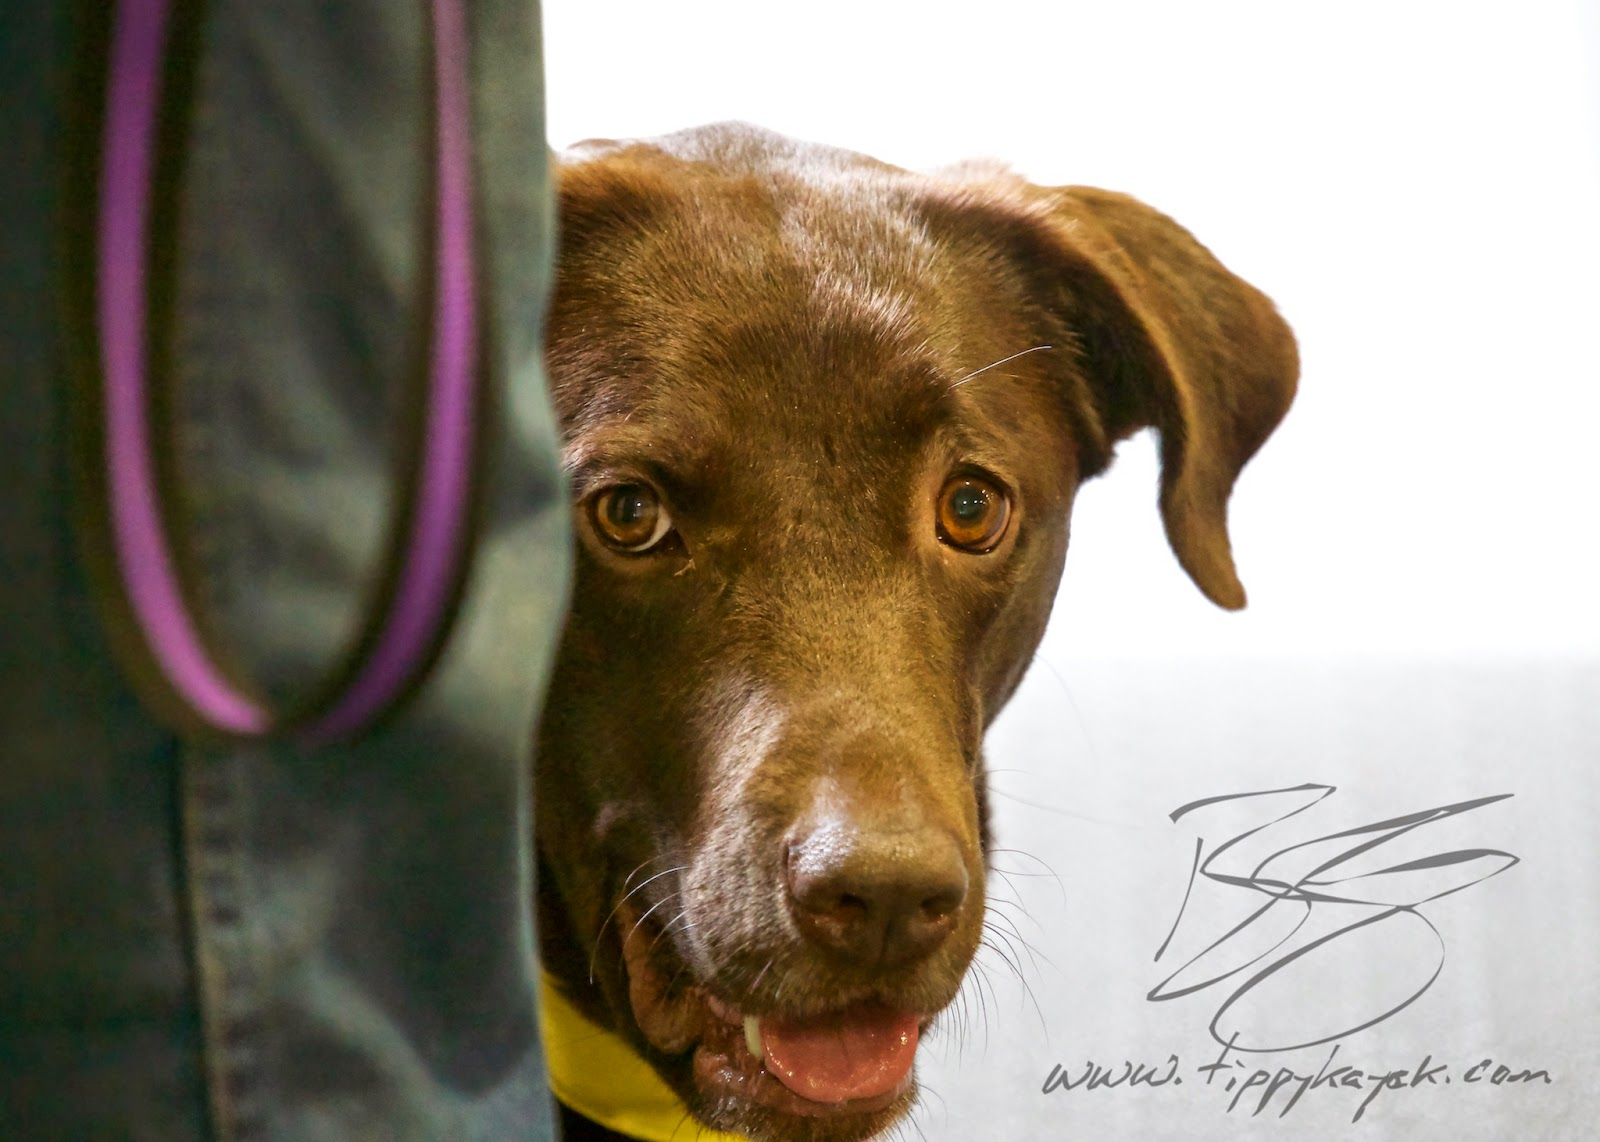 A dog's trust in us deserves a special kind of care and gentleness in training.